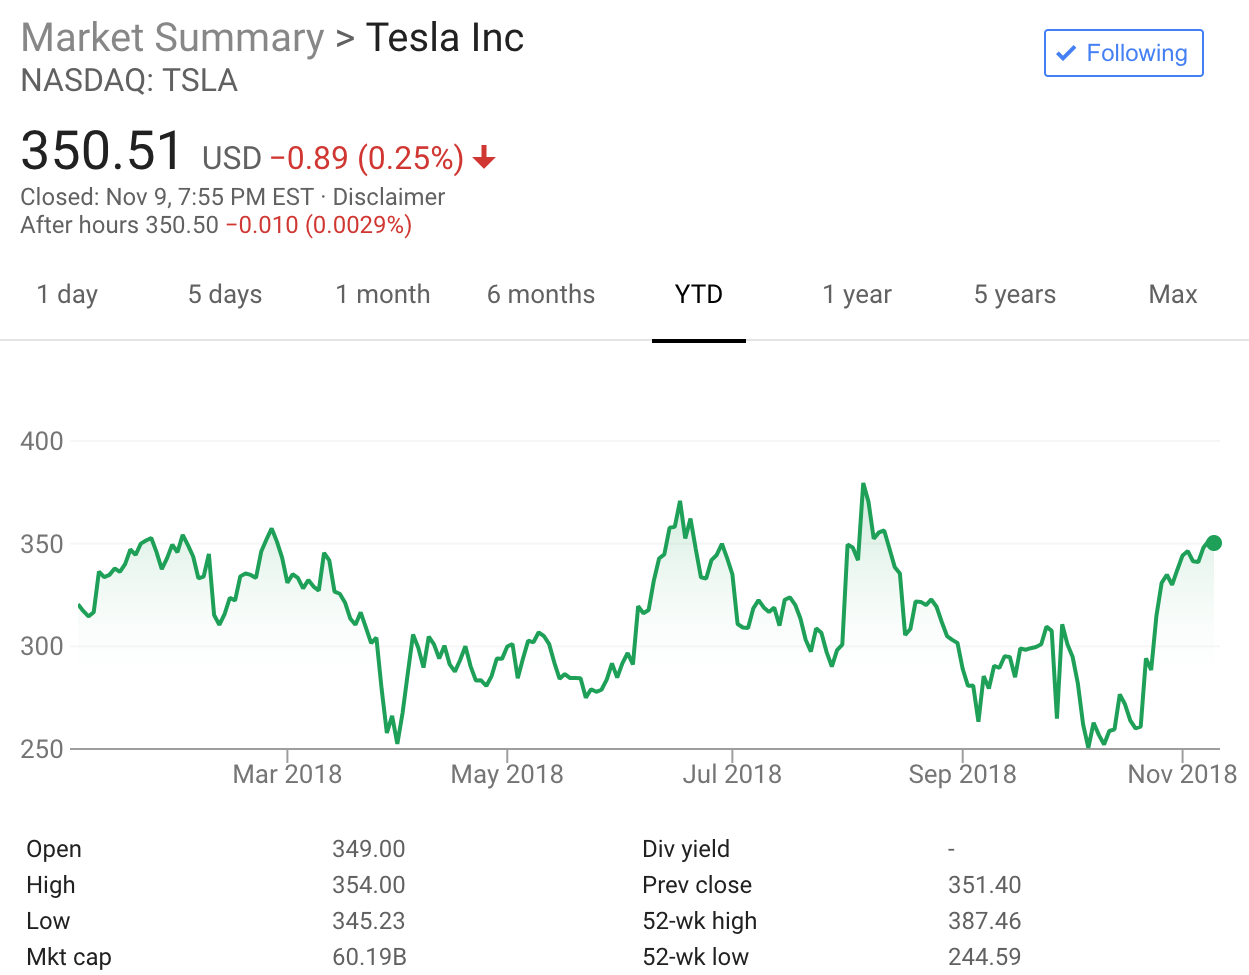 Tesla's Upcoming Inclusion In The S&P 500 Index   CleanTechnica